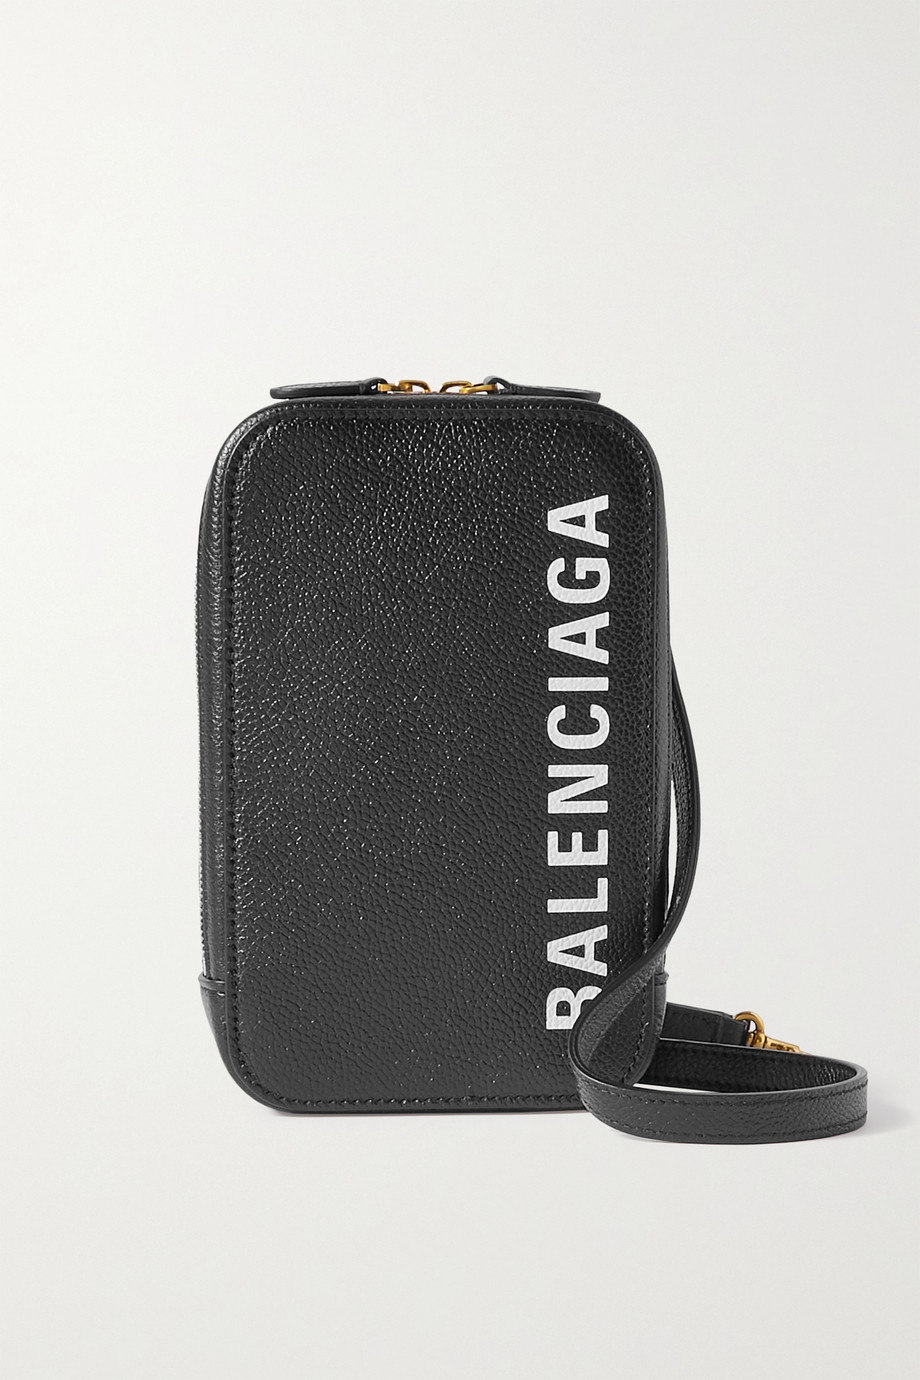 BALENCIAGA Cash textured-leather phone case